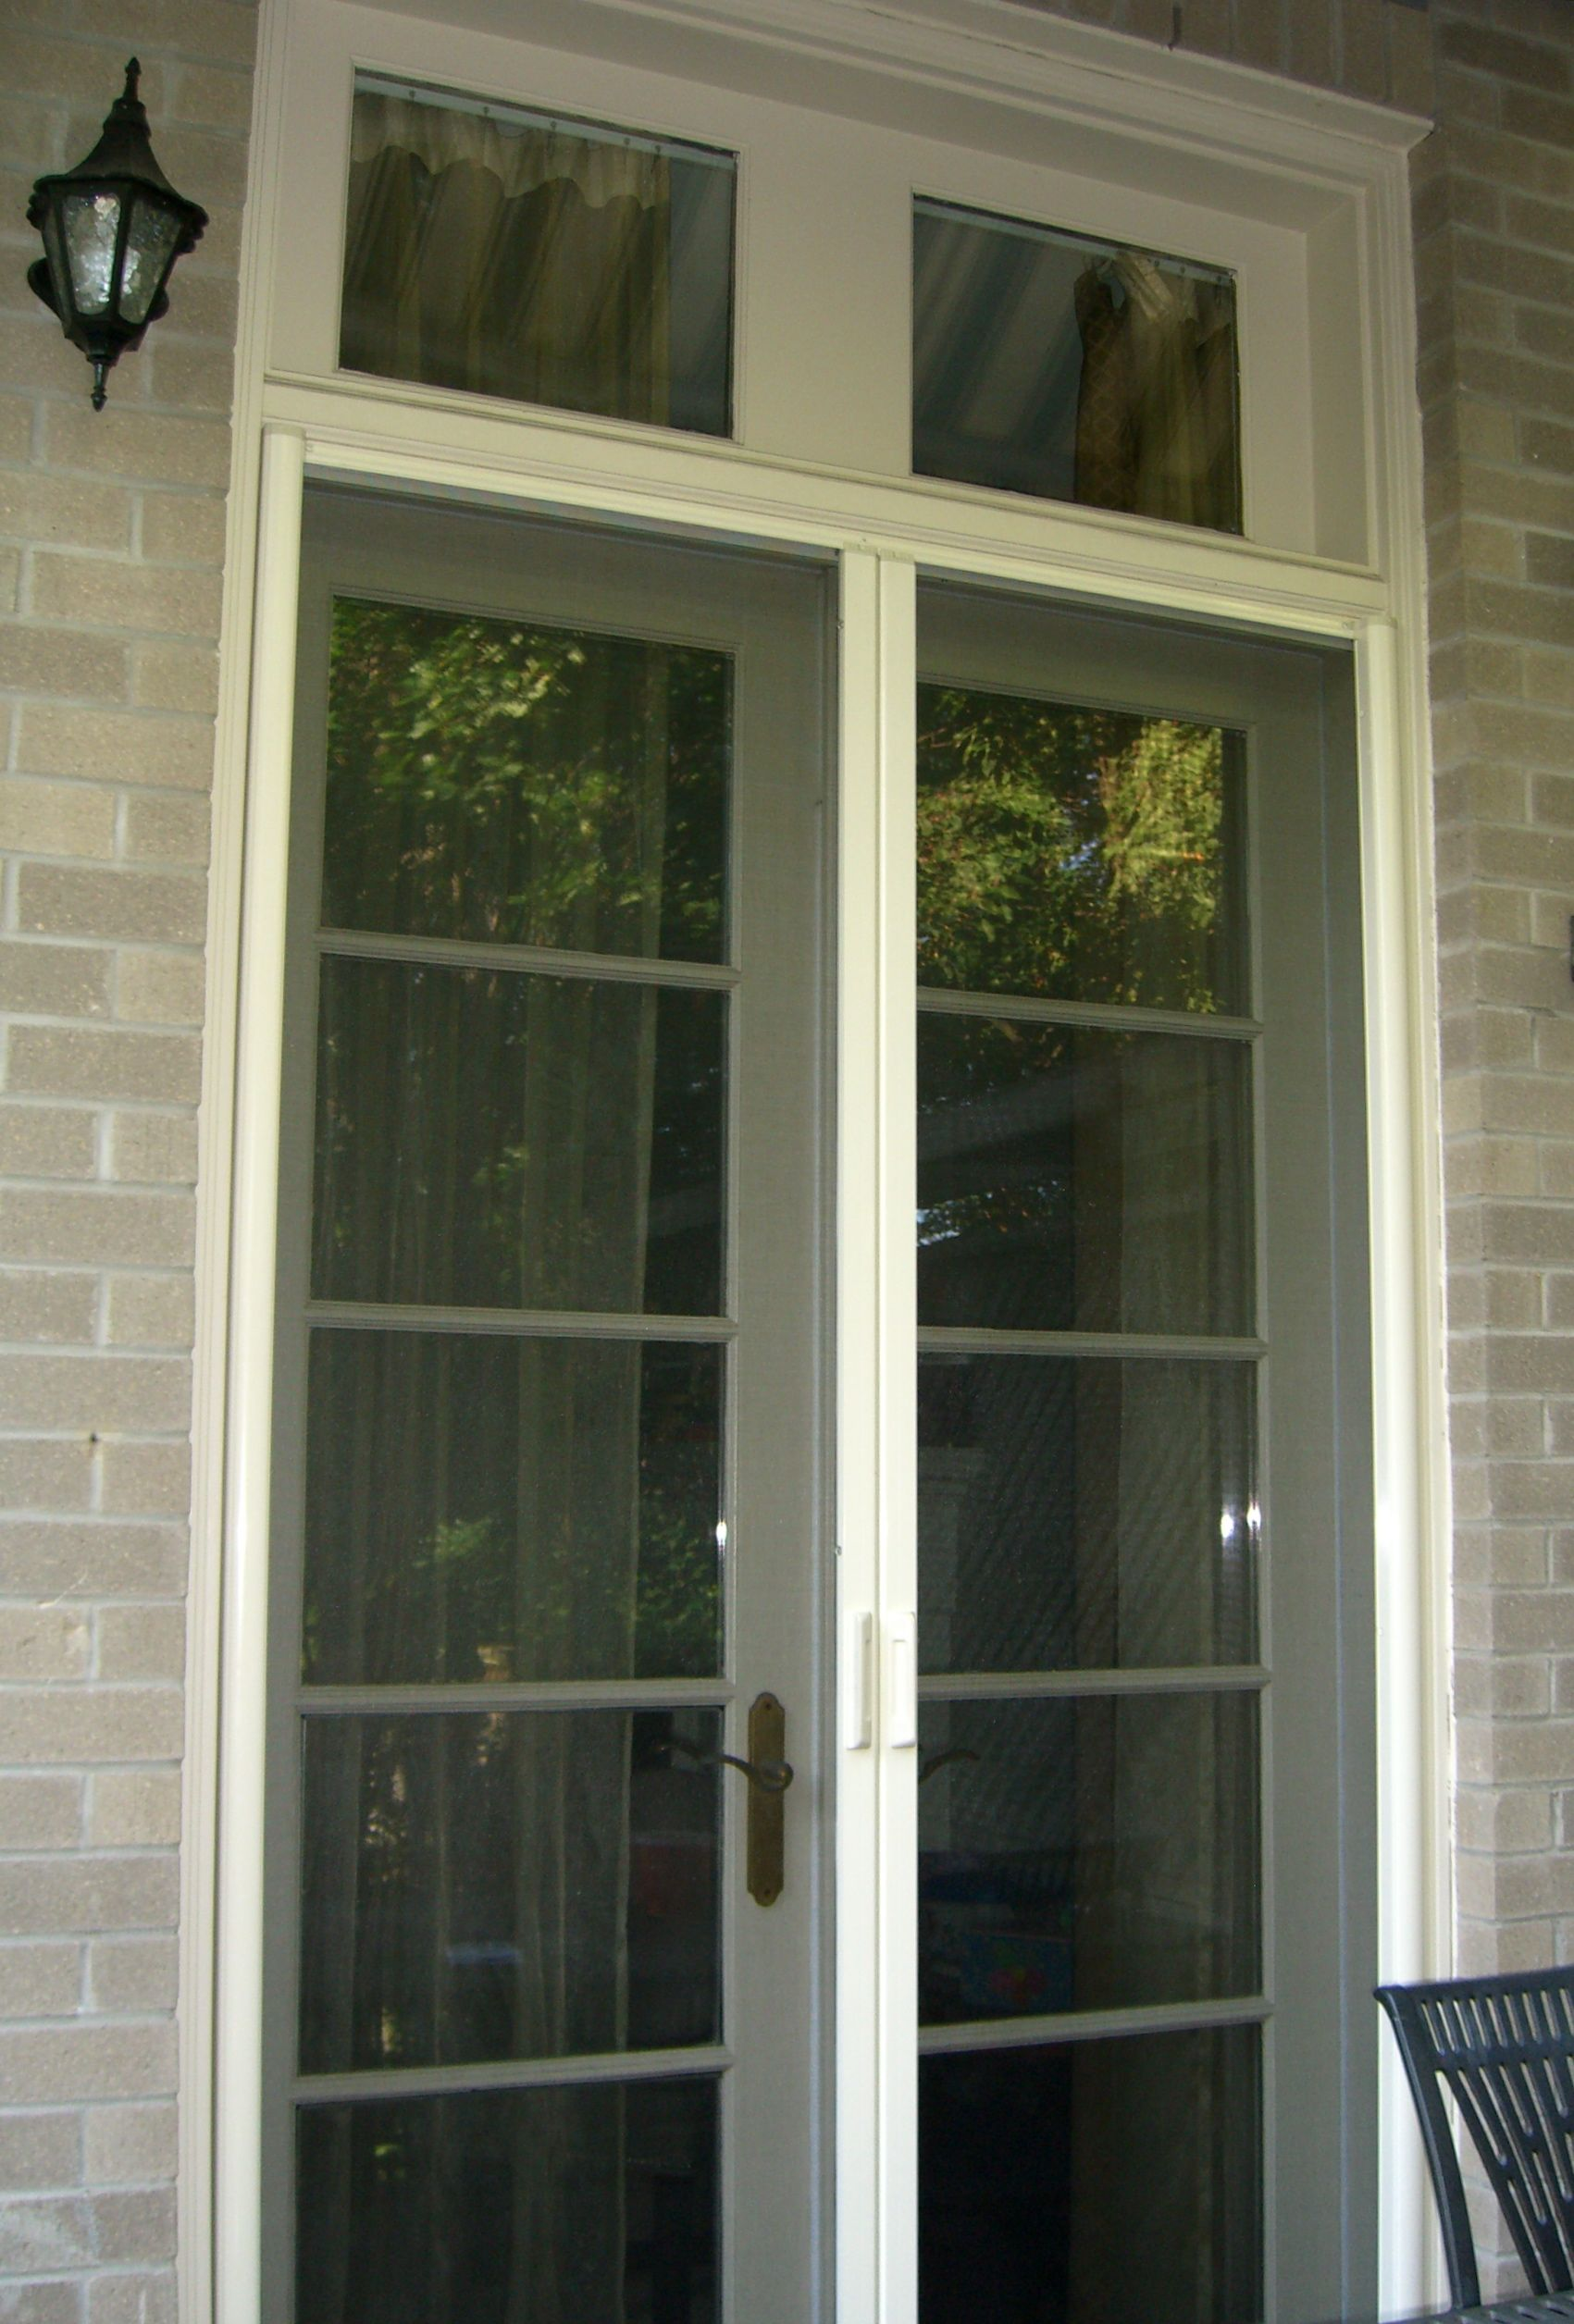 22 Facts To Know About 8 Foot French Doors Exterior Before Buying Interior Exterior Ideas